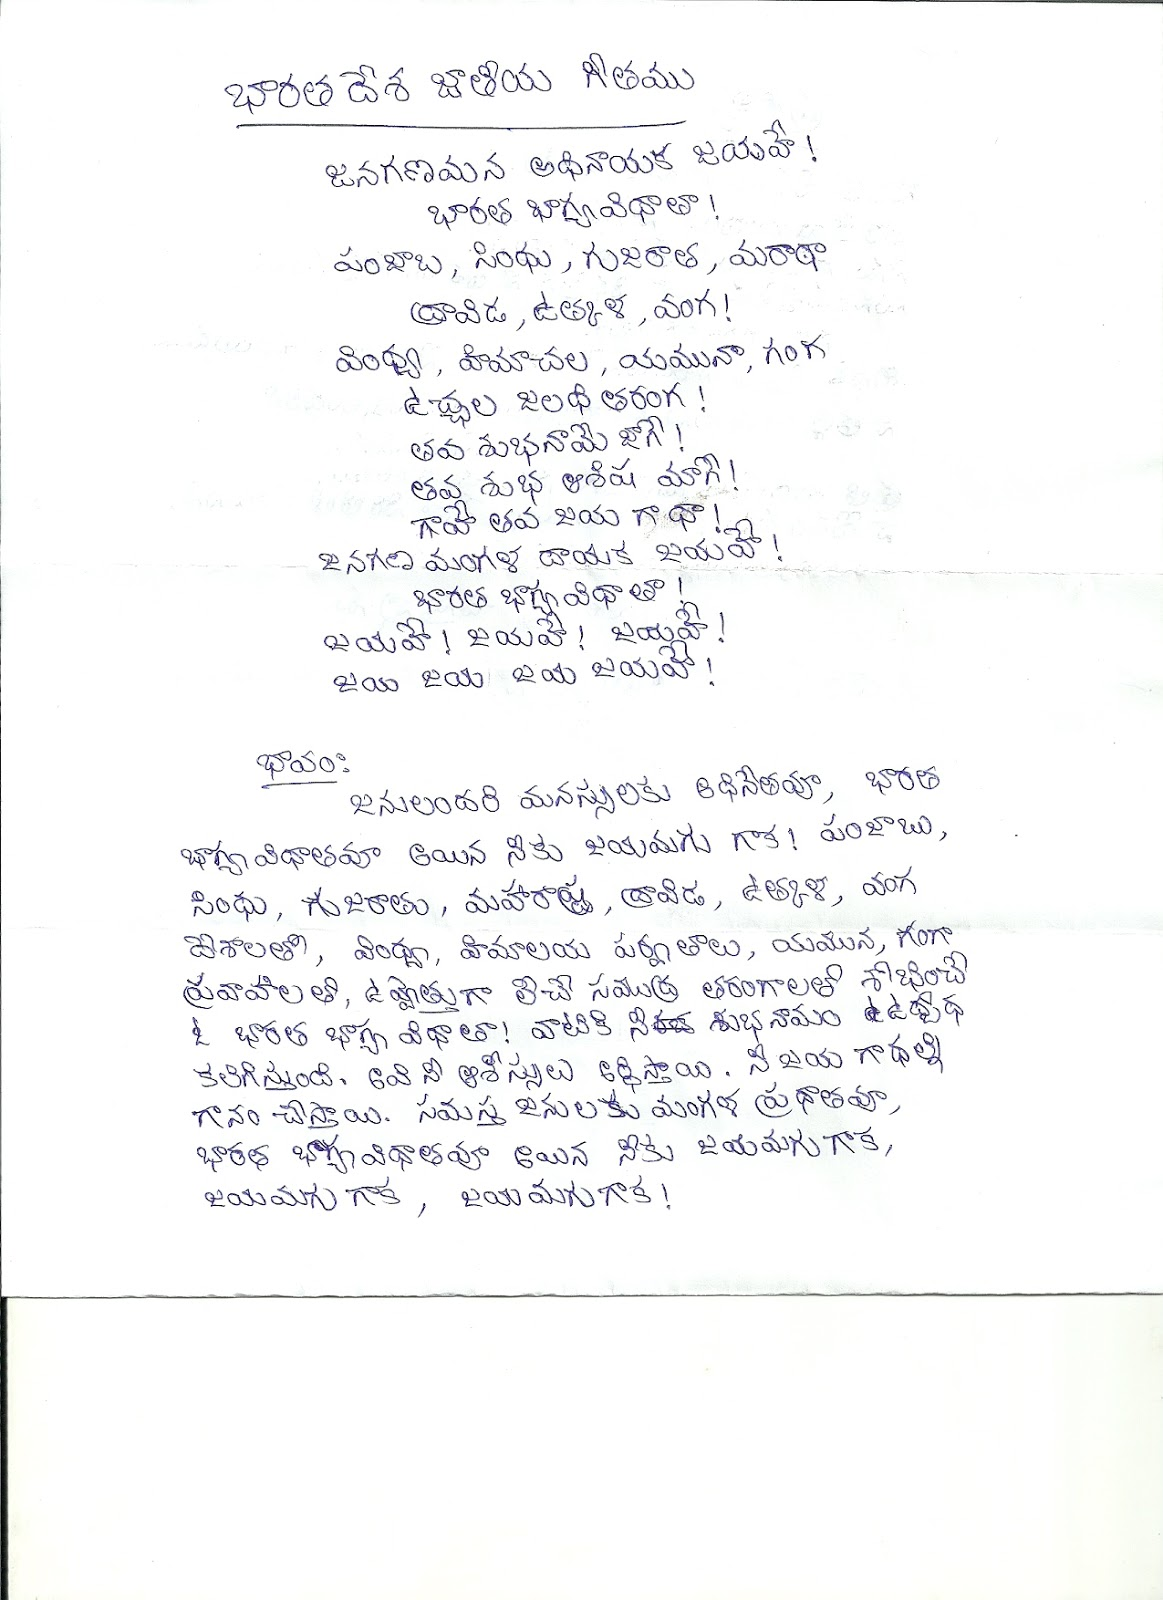 photograph regarding National Anthem Lyrics Printable called Indain Countrywide Anthem in just Telugu script / Telugu words and phrases